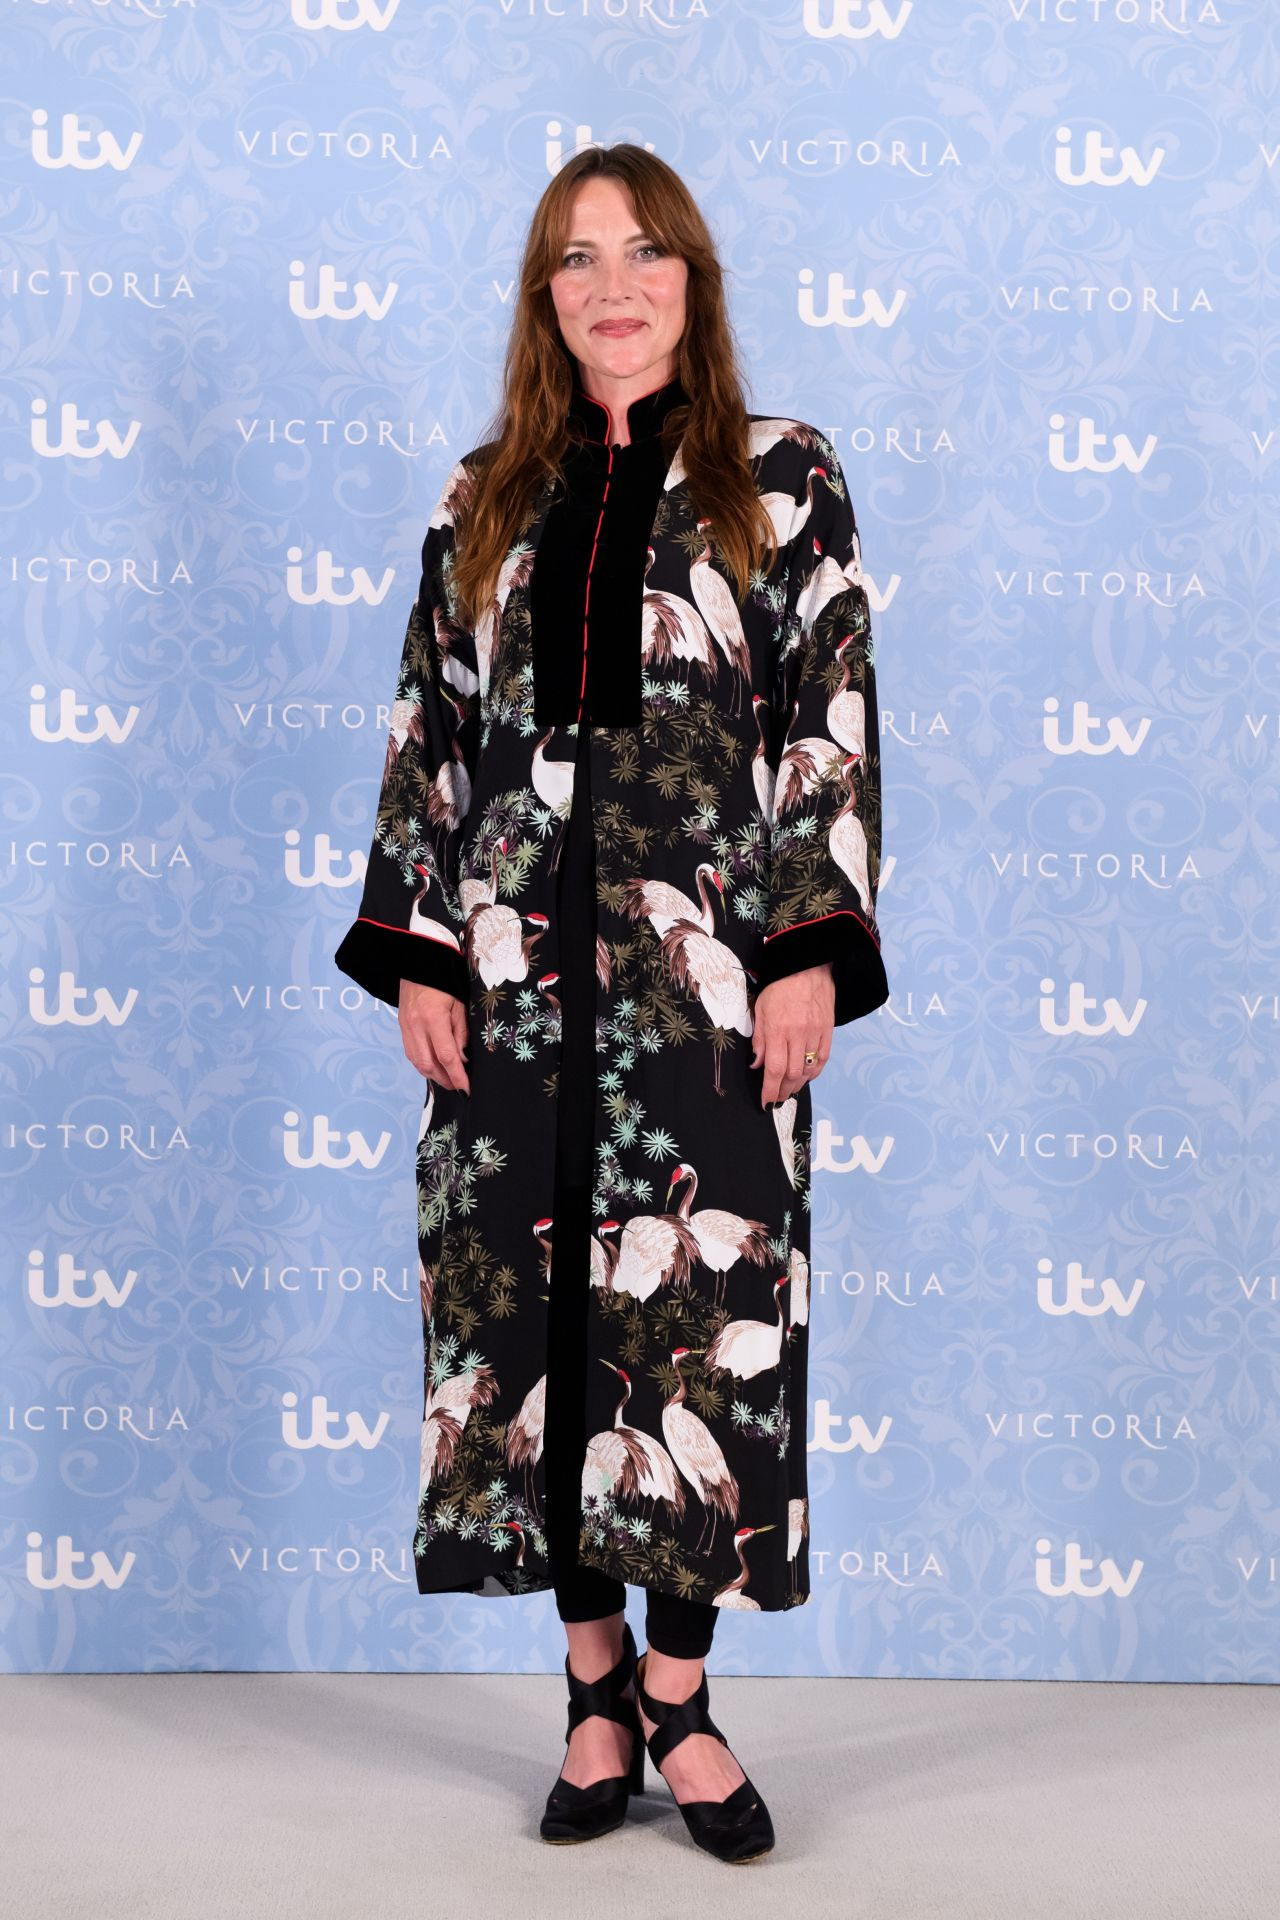 Anna Wilson Jones Victoria Tv Show Season 2 Photocall